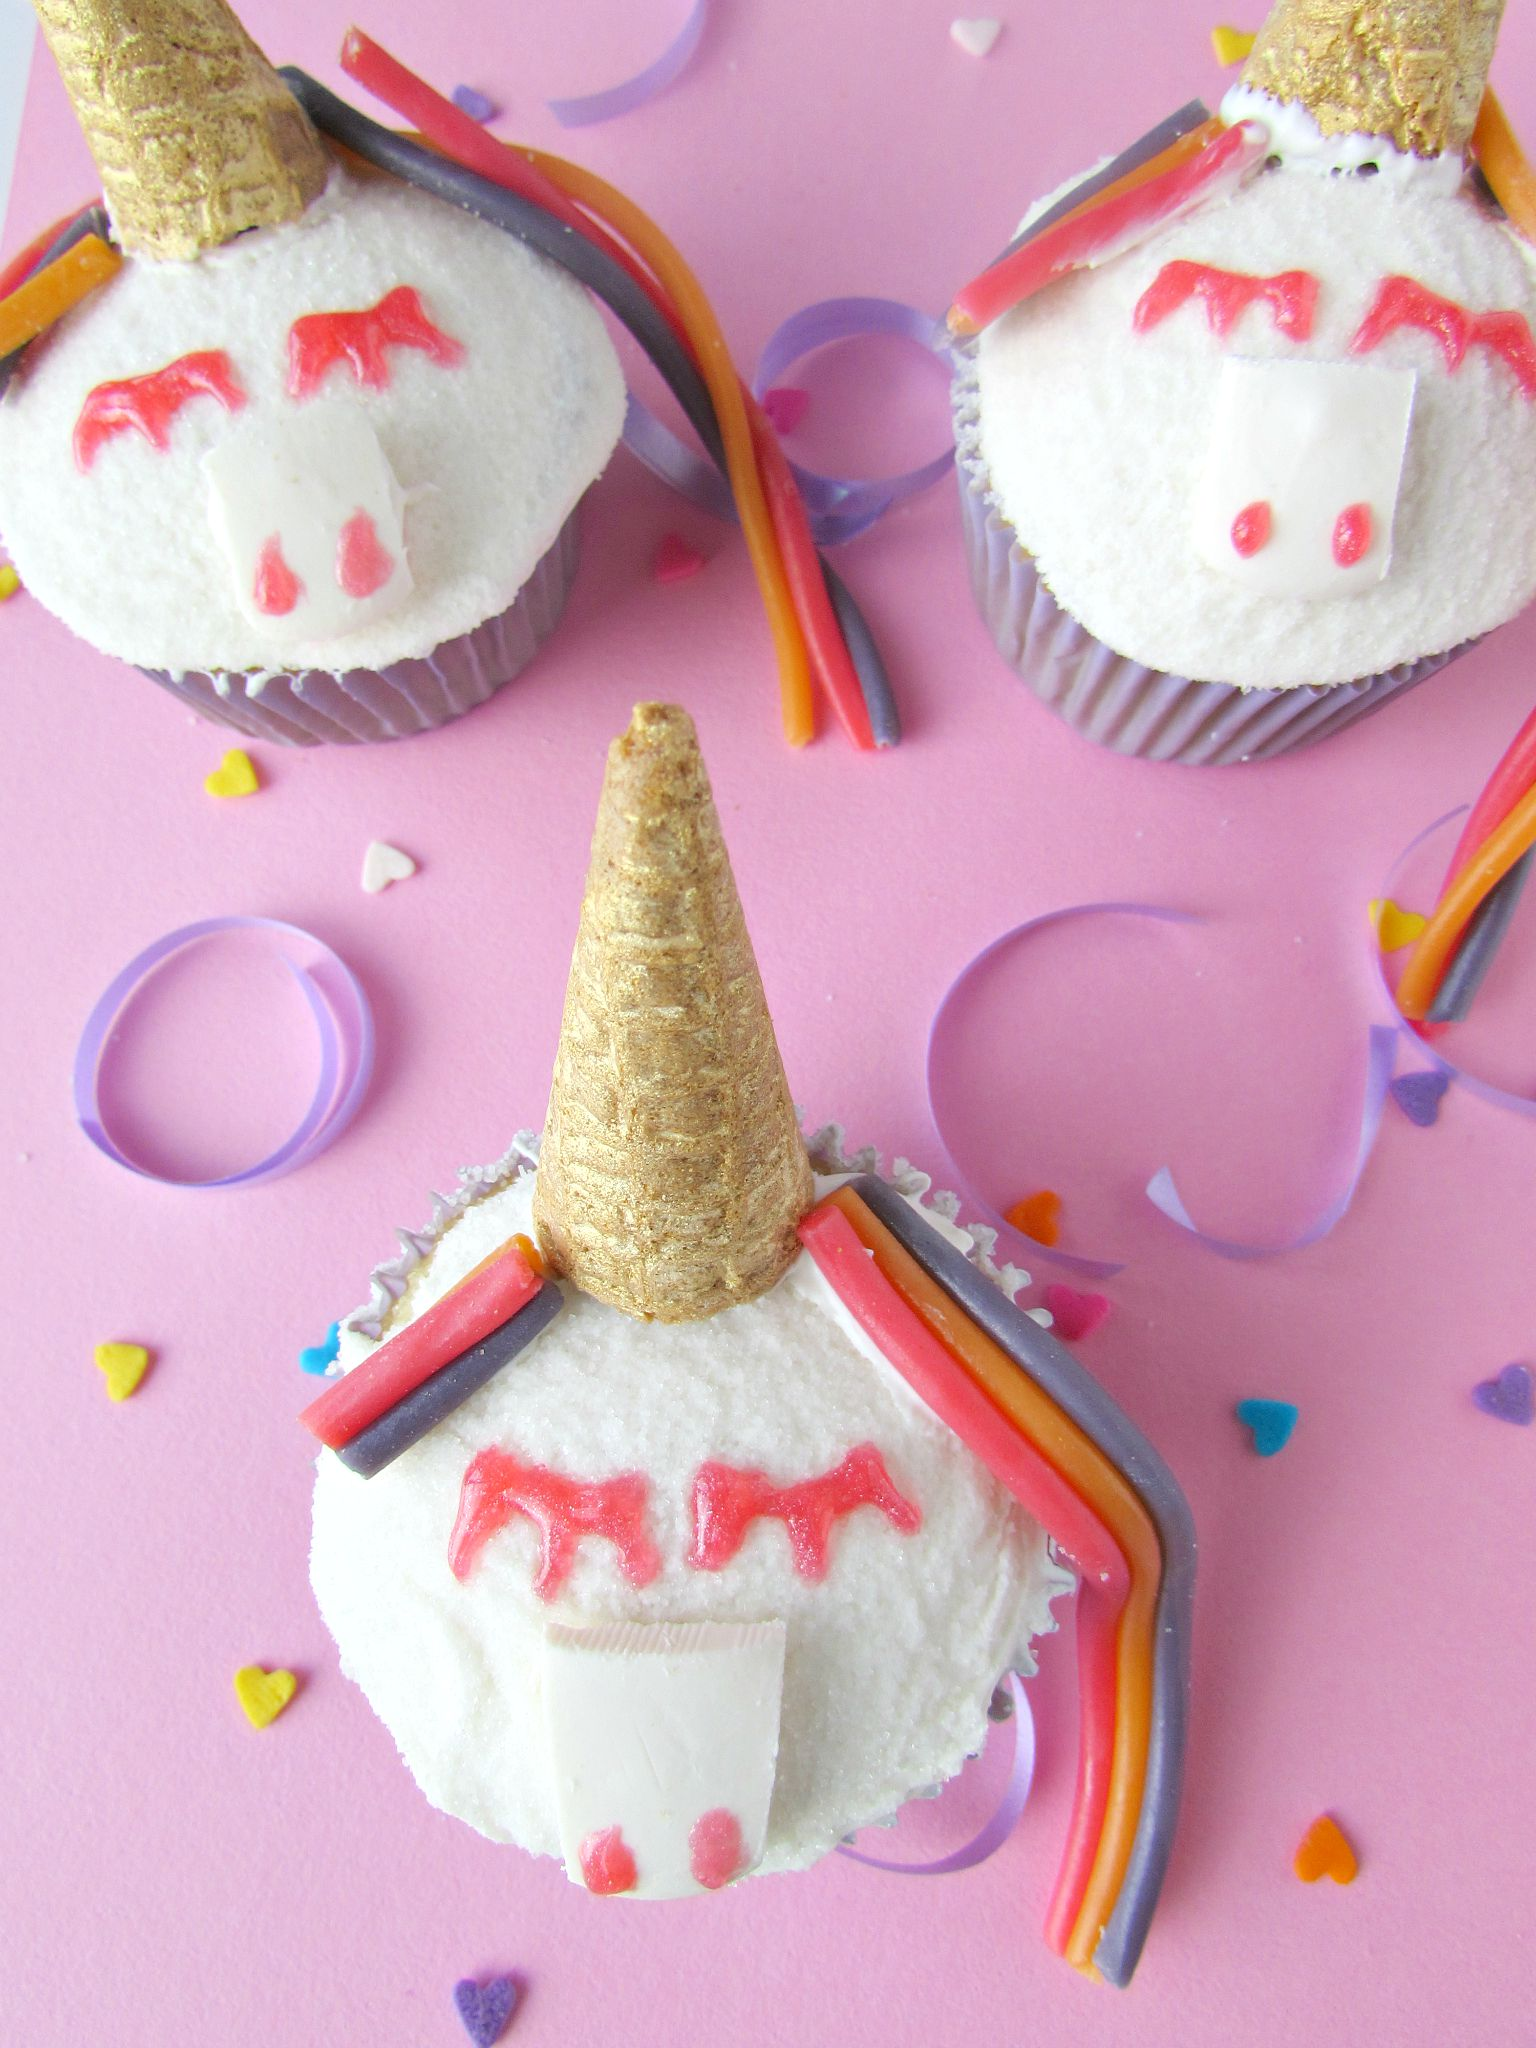 Shakes  bination Freezers likewise Ice Cream Scoops Coloring Pages besides How To Draw A Cone in addition Create A Stylized Ice Cream Cone In Photoshop together with Unicorn Blondie Sundaes. on ice cream cones you can draw